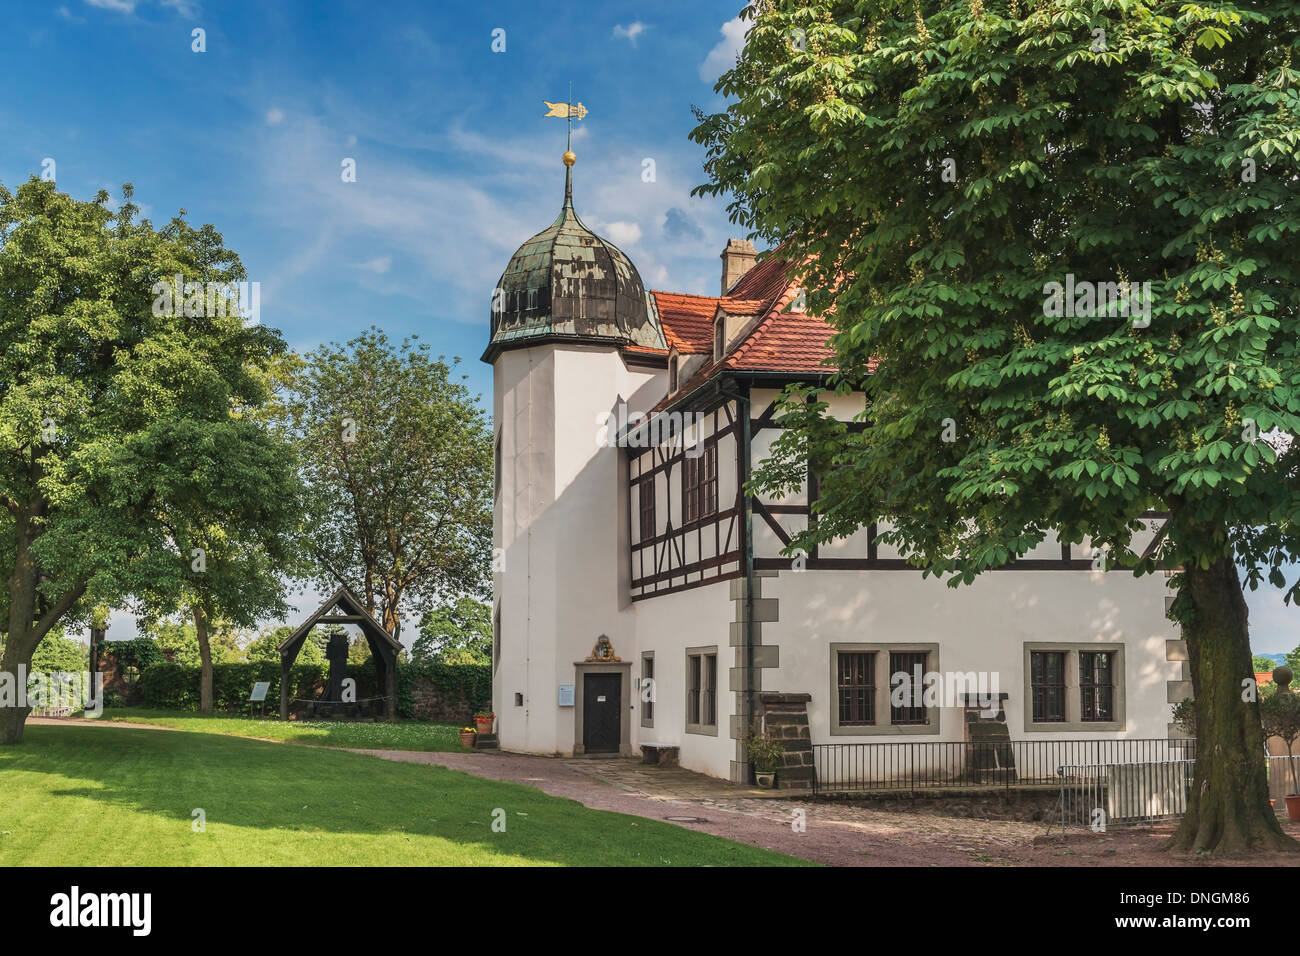 Summer residence Castle Hoflössnitz is a building in the wine-growing area in Radebeul near Dresden, Saxony, Germany, Europe - Stock Image